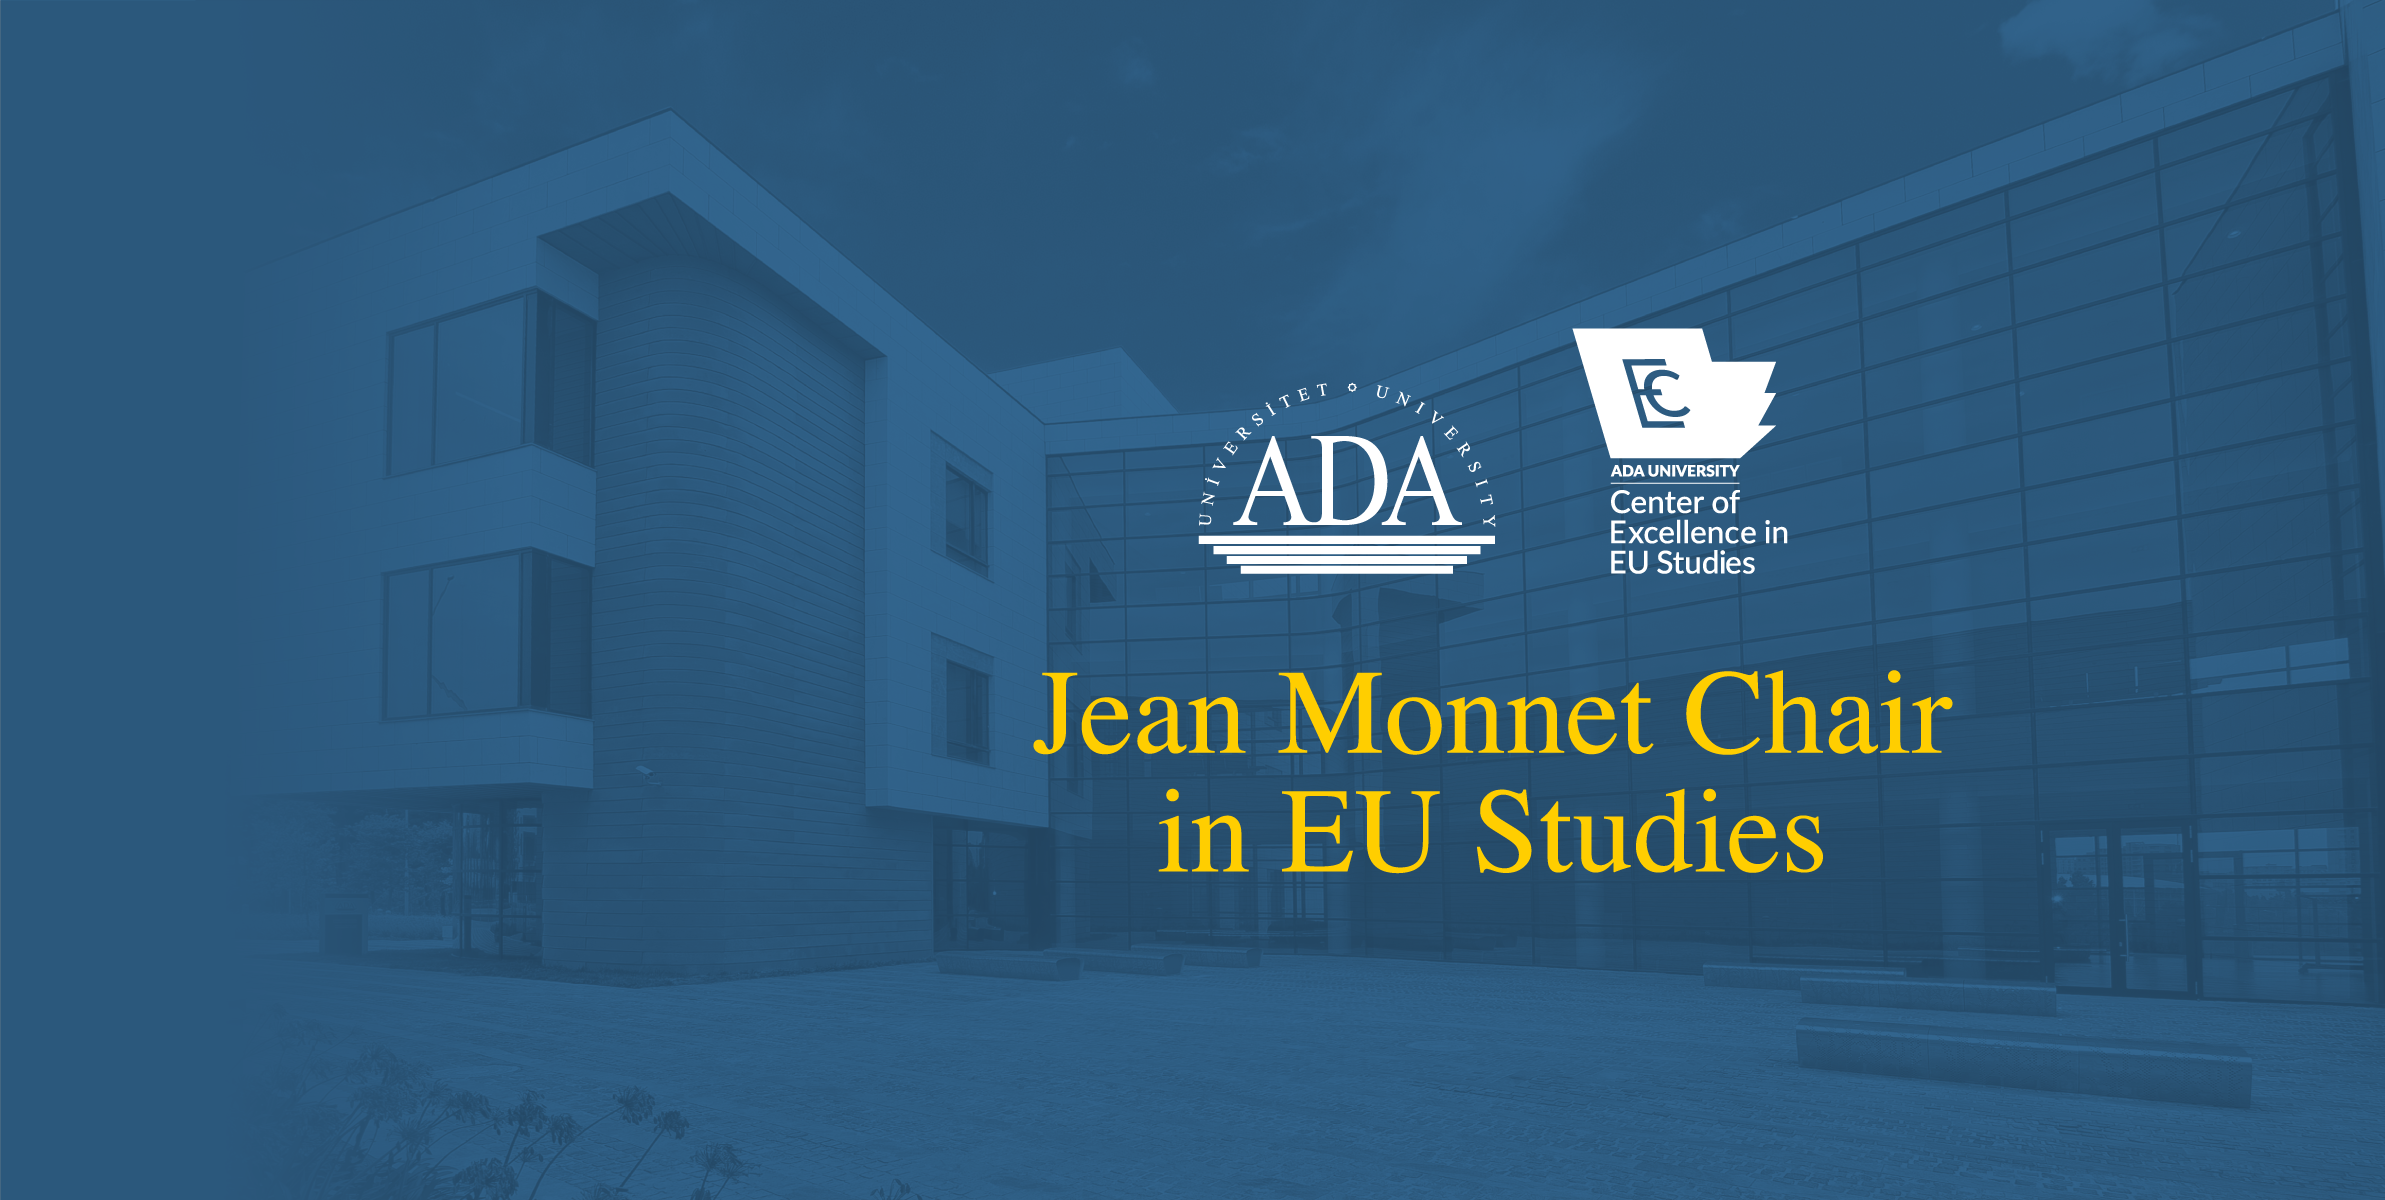 Dr. Anar Valiyev, Dean of School of Public and International Affairs, appointed Jean Monnet Chair